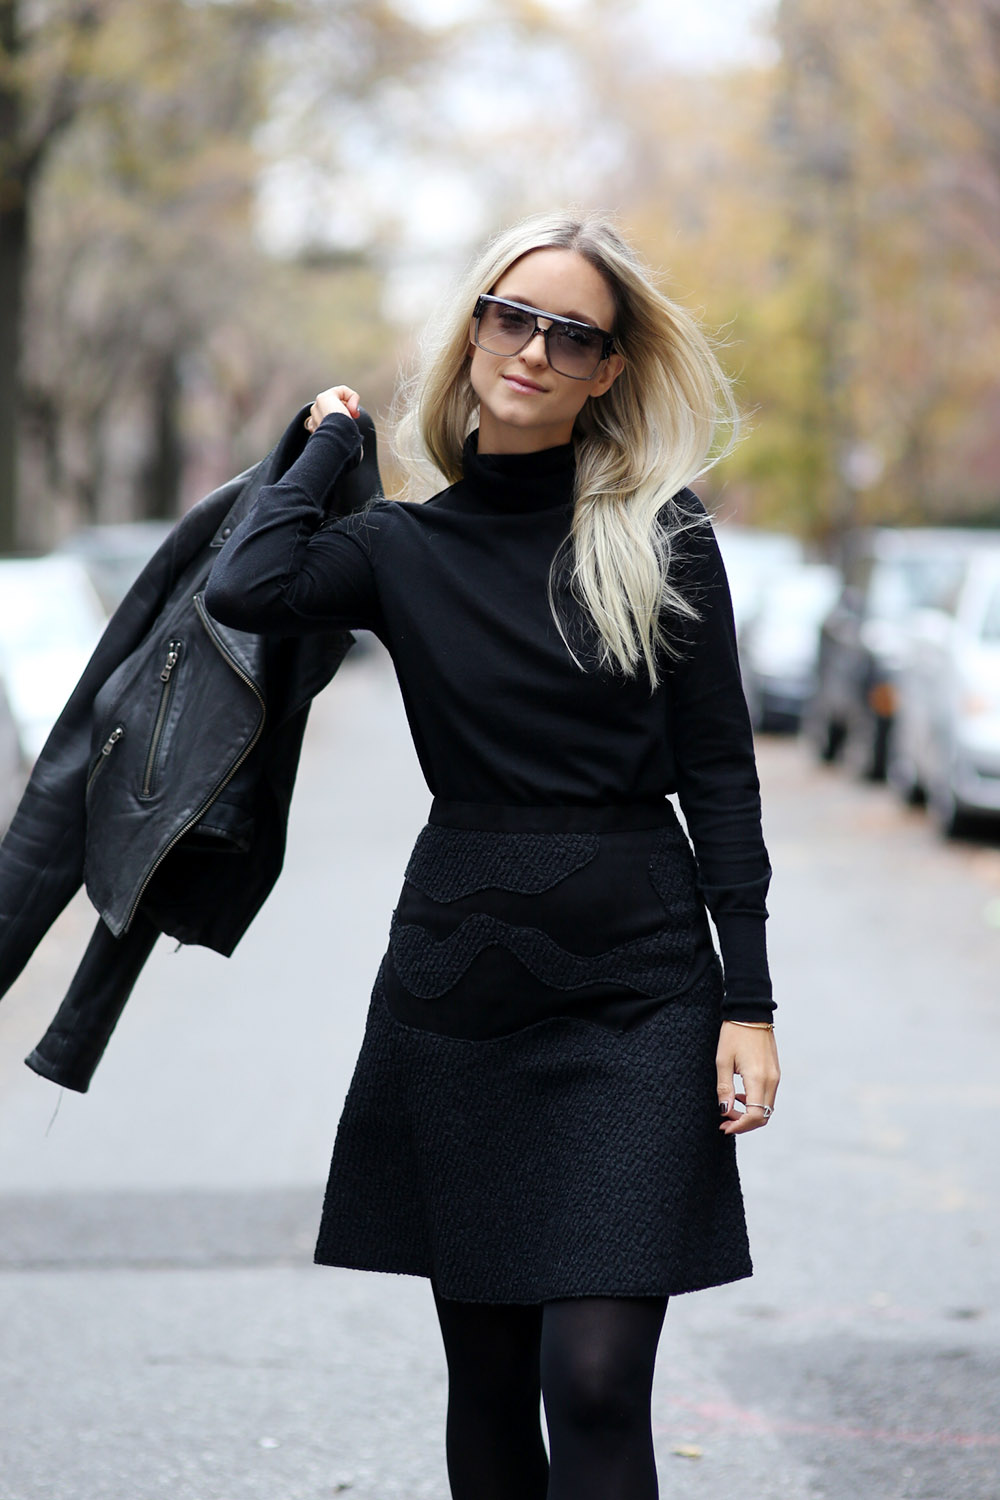 All black | THEFASHIONGUITAR